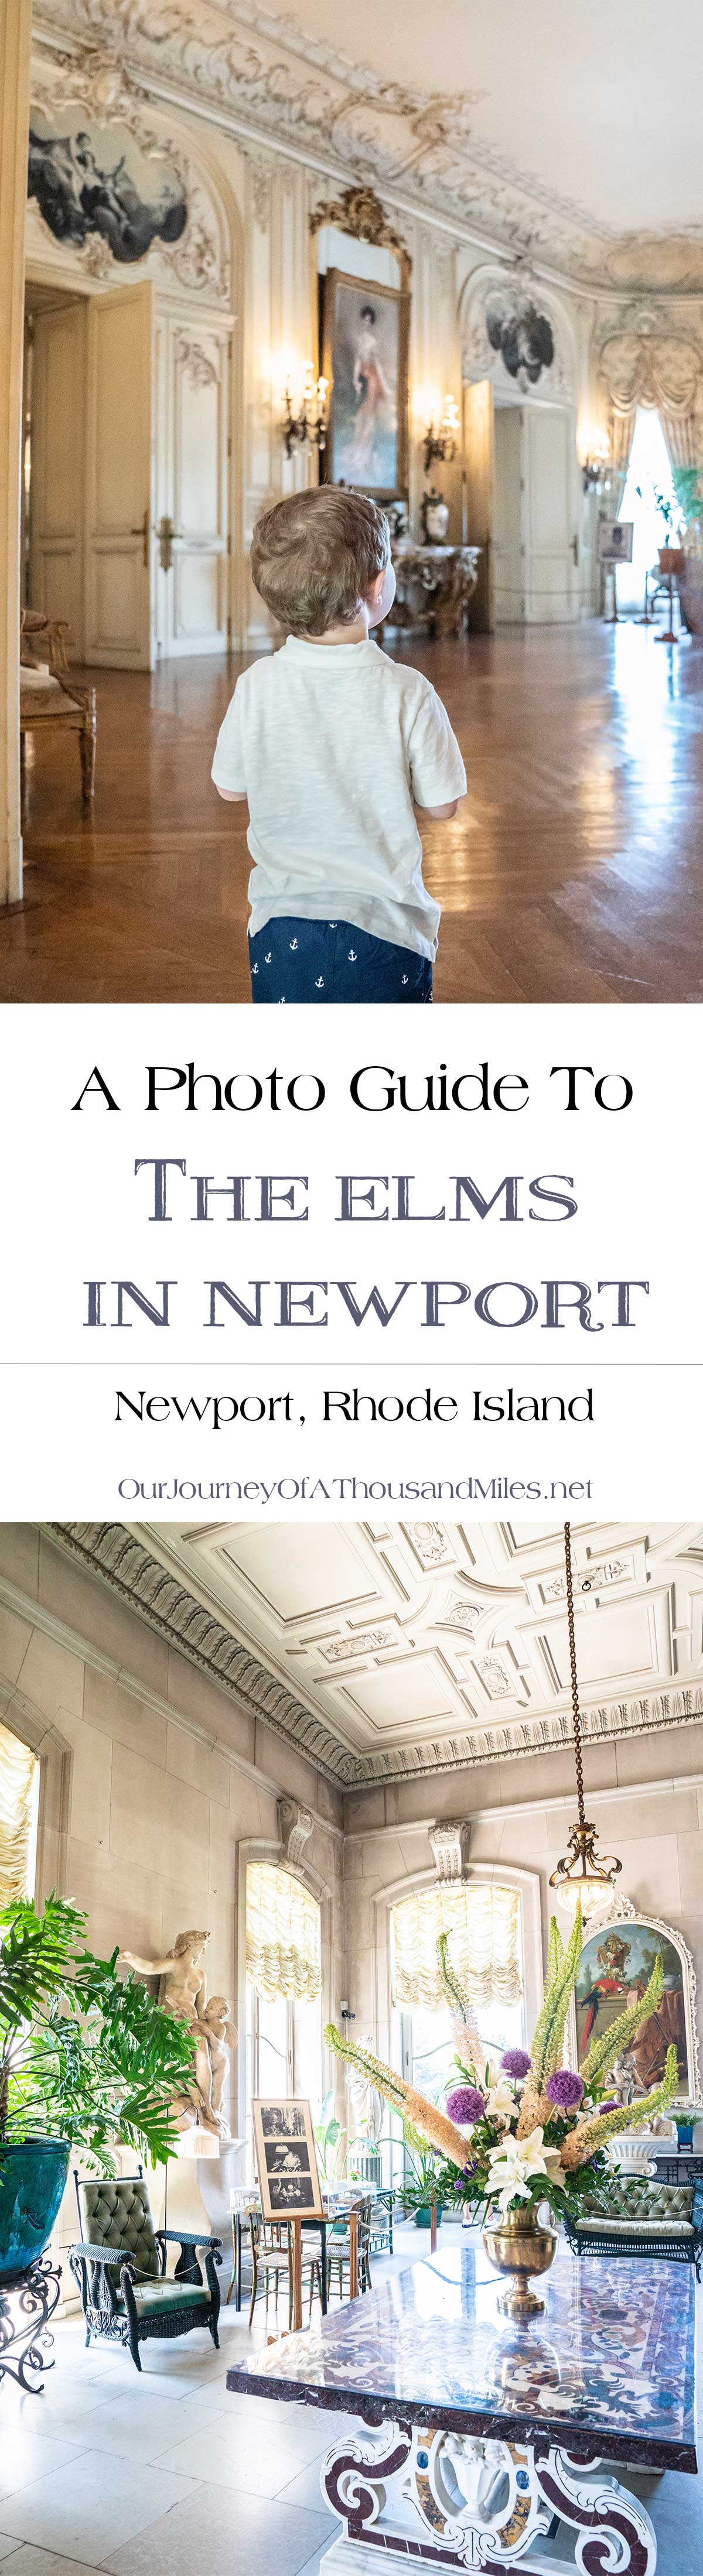 A-Photo-Guide-To-The-Elms-Mansion-In-Newport-Rhode-Island